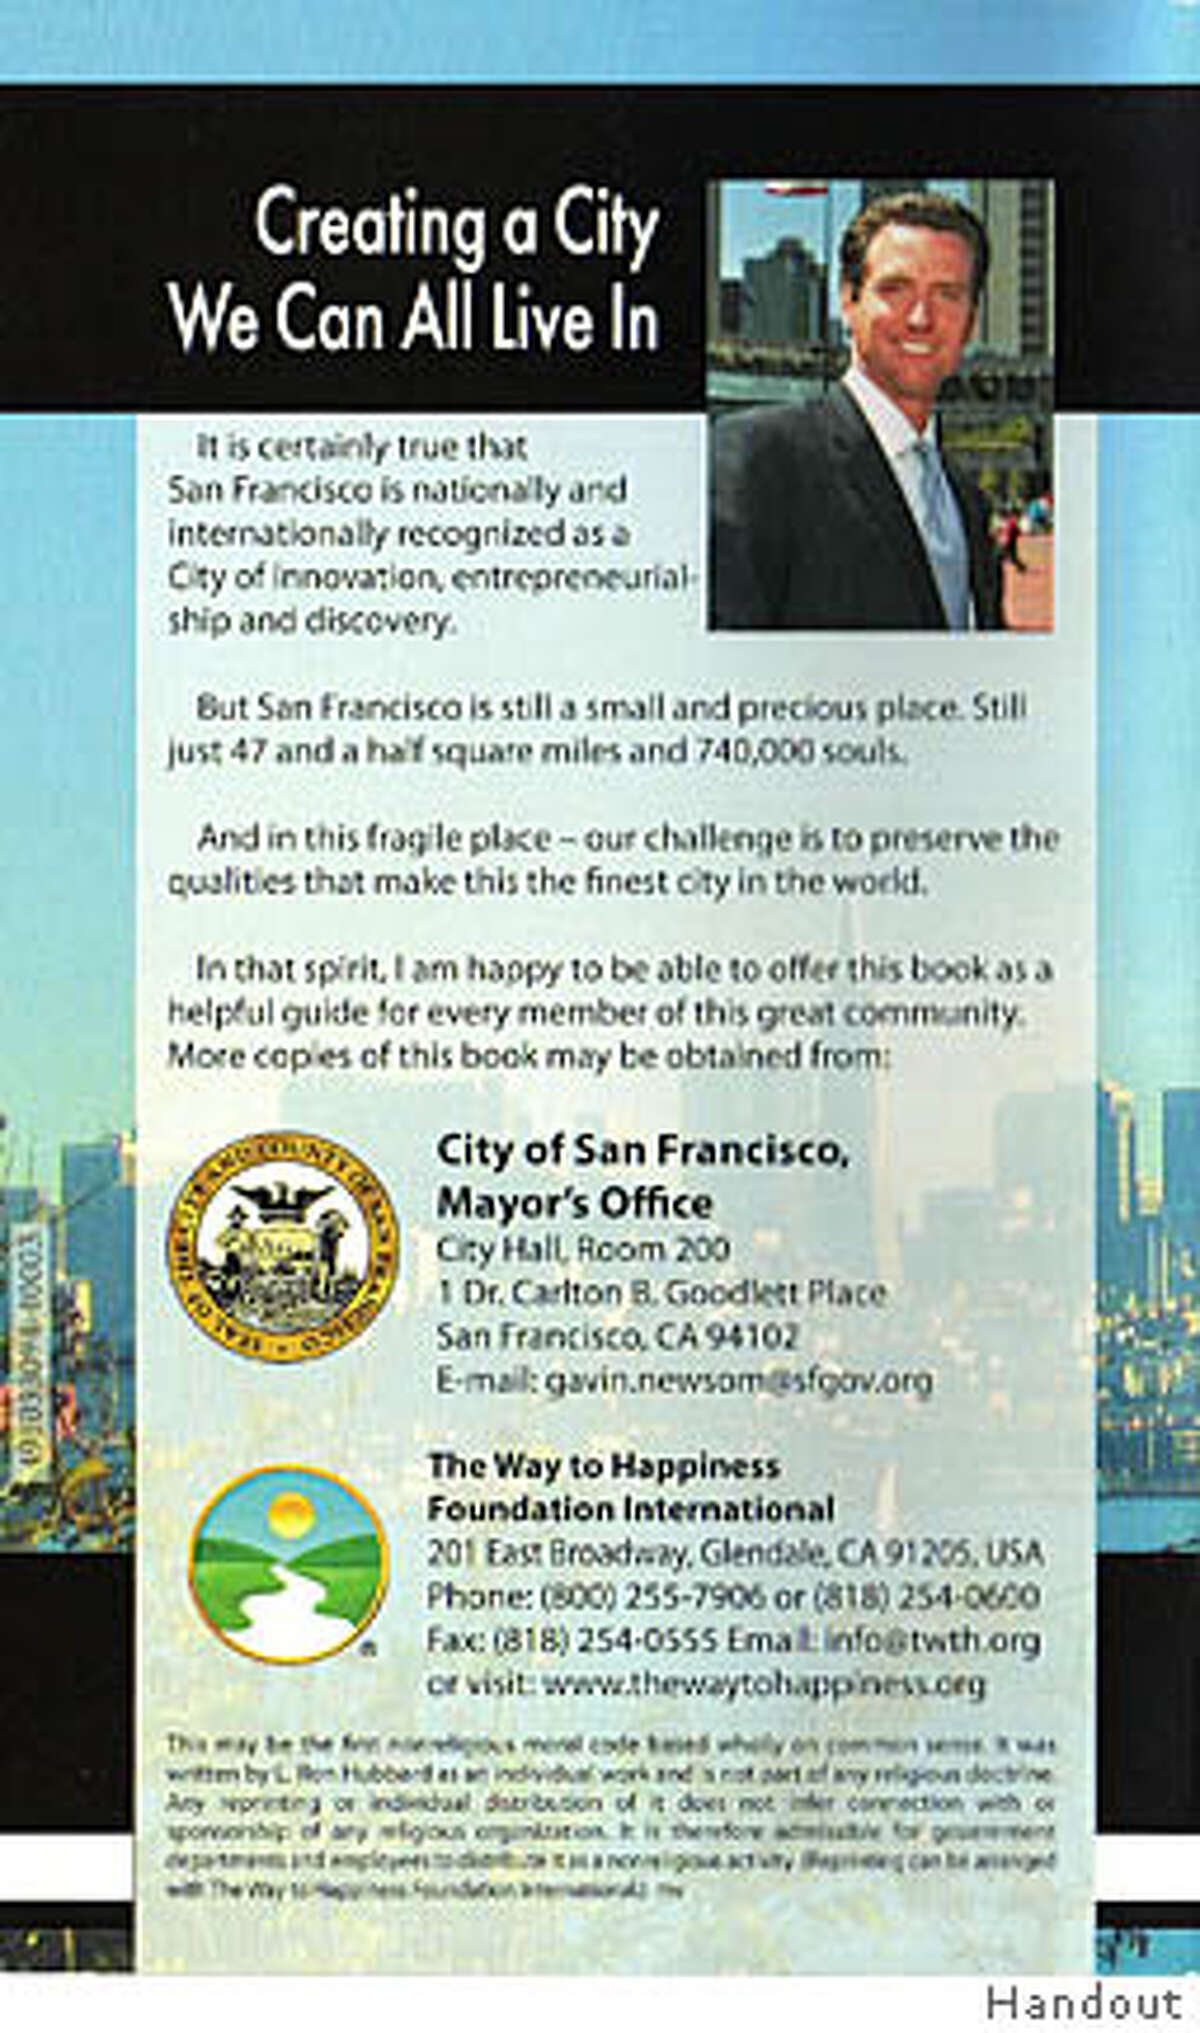 """San Francisco Mayor Gavin Newsom's smiling picture and a fictitious letter of endorsement from him are featured on a scientology booklet called """"The Way to Happiness - a Common Sense Guide to Better Living."""" But while the mayor was once romantically linked to a scientologist actress, his office says he in no way endorses the booklet, which offers 21 ways to achieve a happier life written by Scientology founder L. Ron Hubbard. The San Francisco City Attorney's office has sent a cease and desist letter to The Way to Happiness Foundation, which used Newsom's name and city seal on its 64-page booklet without permission. Ran on: 10-13-2007 Ran on: 10-13-2007"""